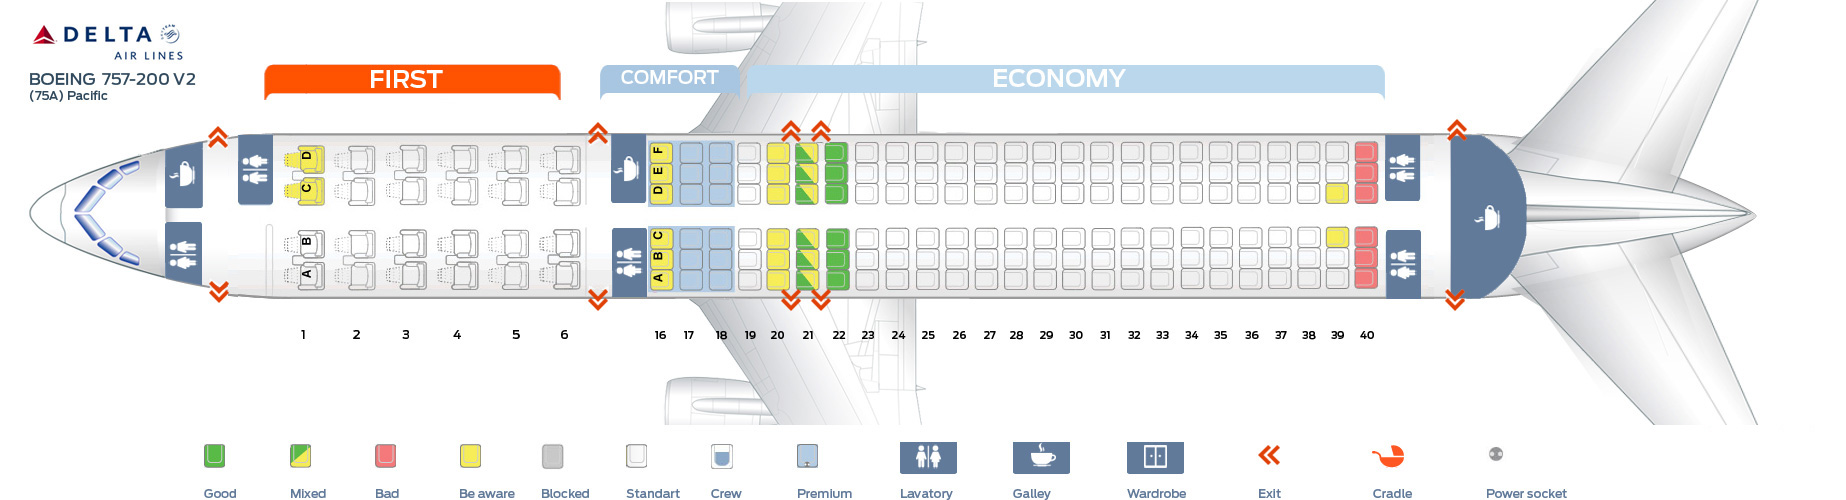 Seat_map_Delta_Airlines_Boeing_757-200_75A_v2_pacific